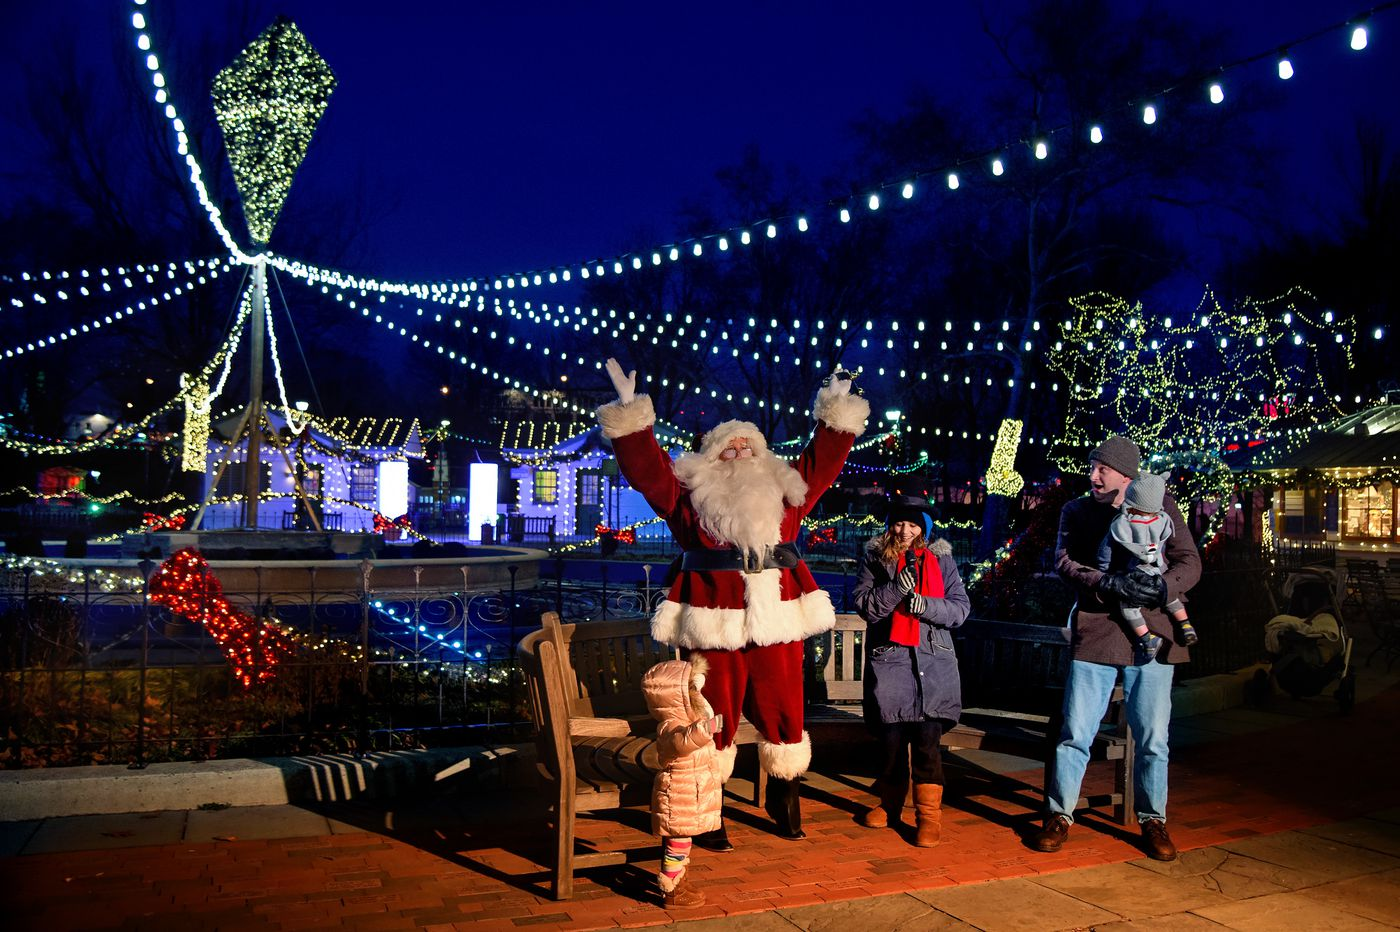 Is believing in Santa good or bad for kids? | Opinion